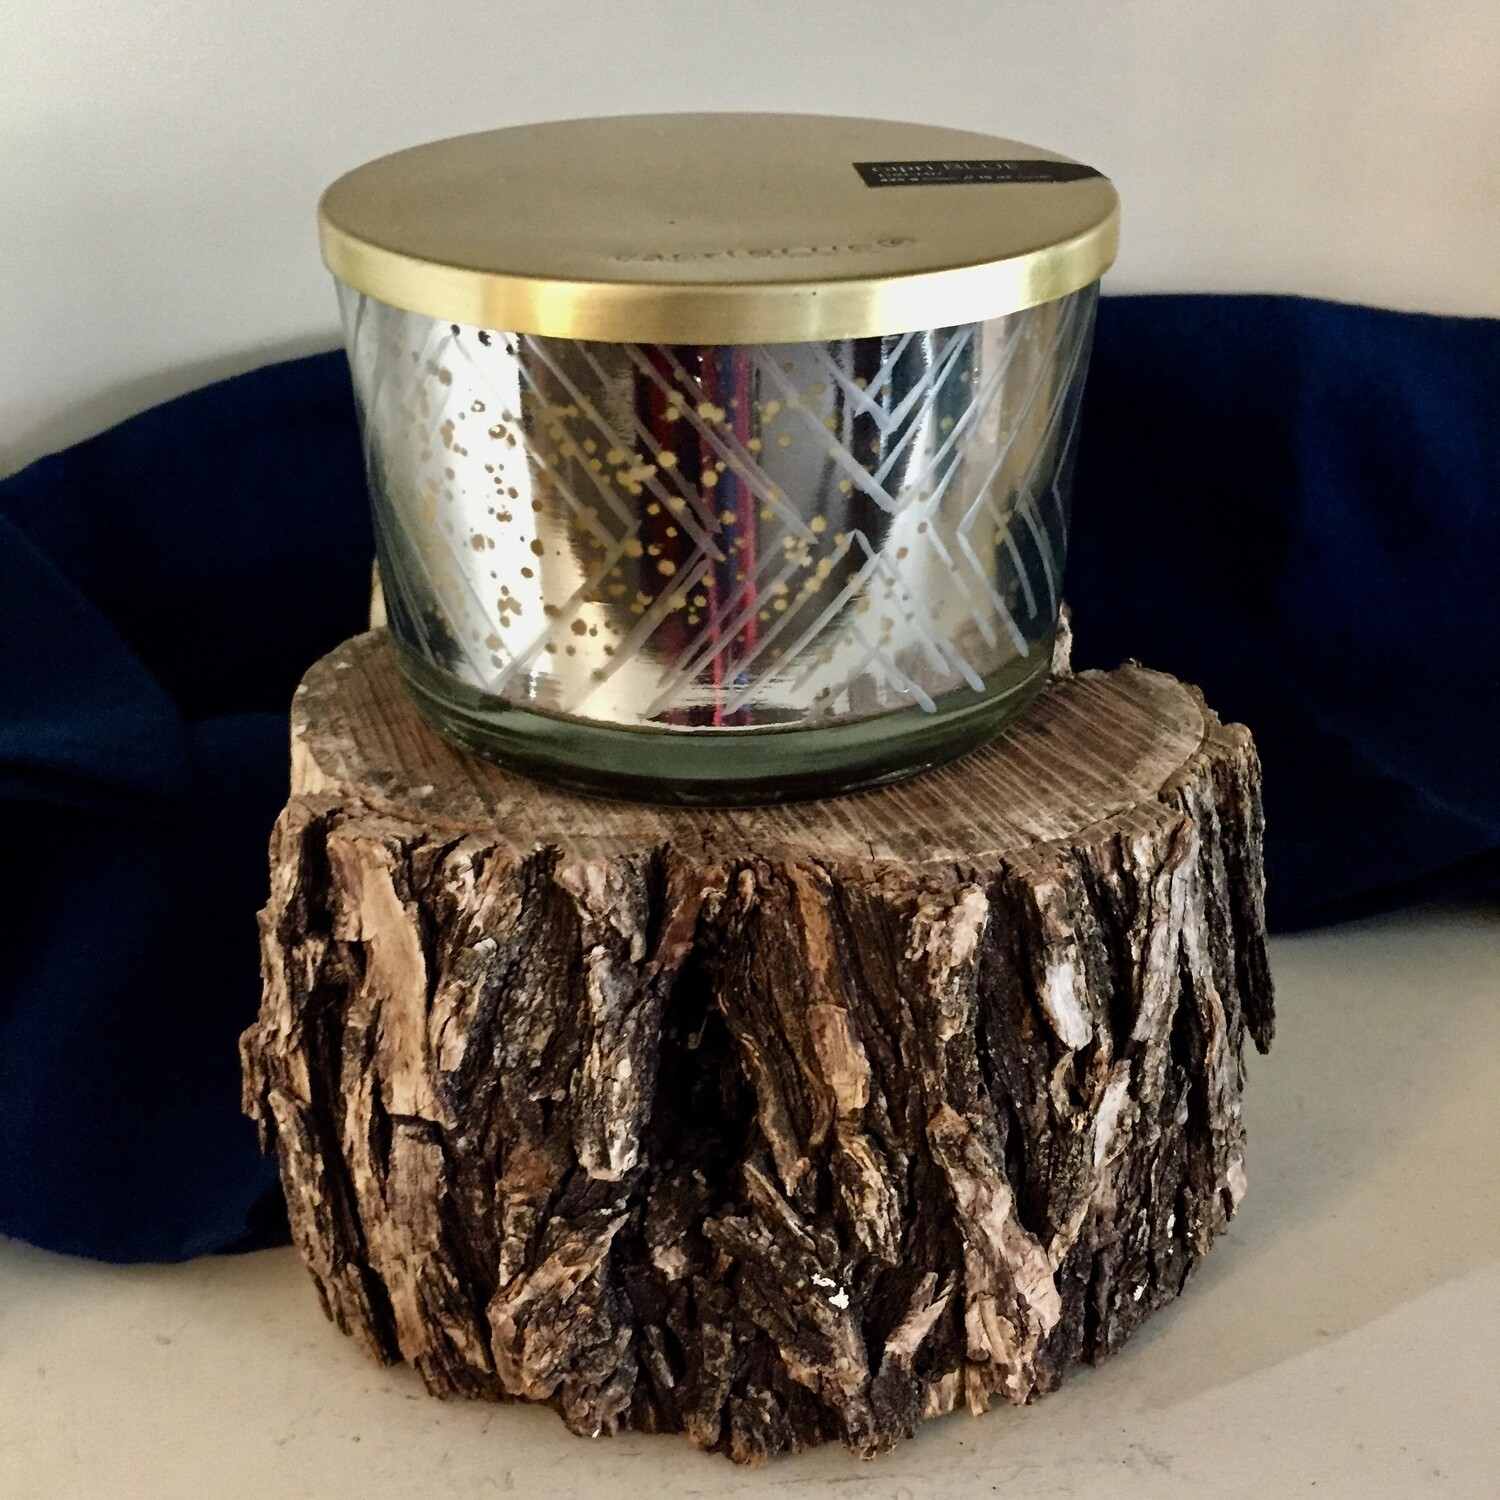 Volcano Bowl Candle